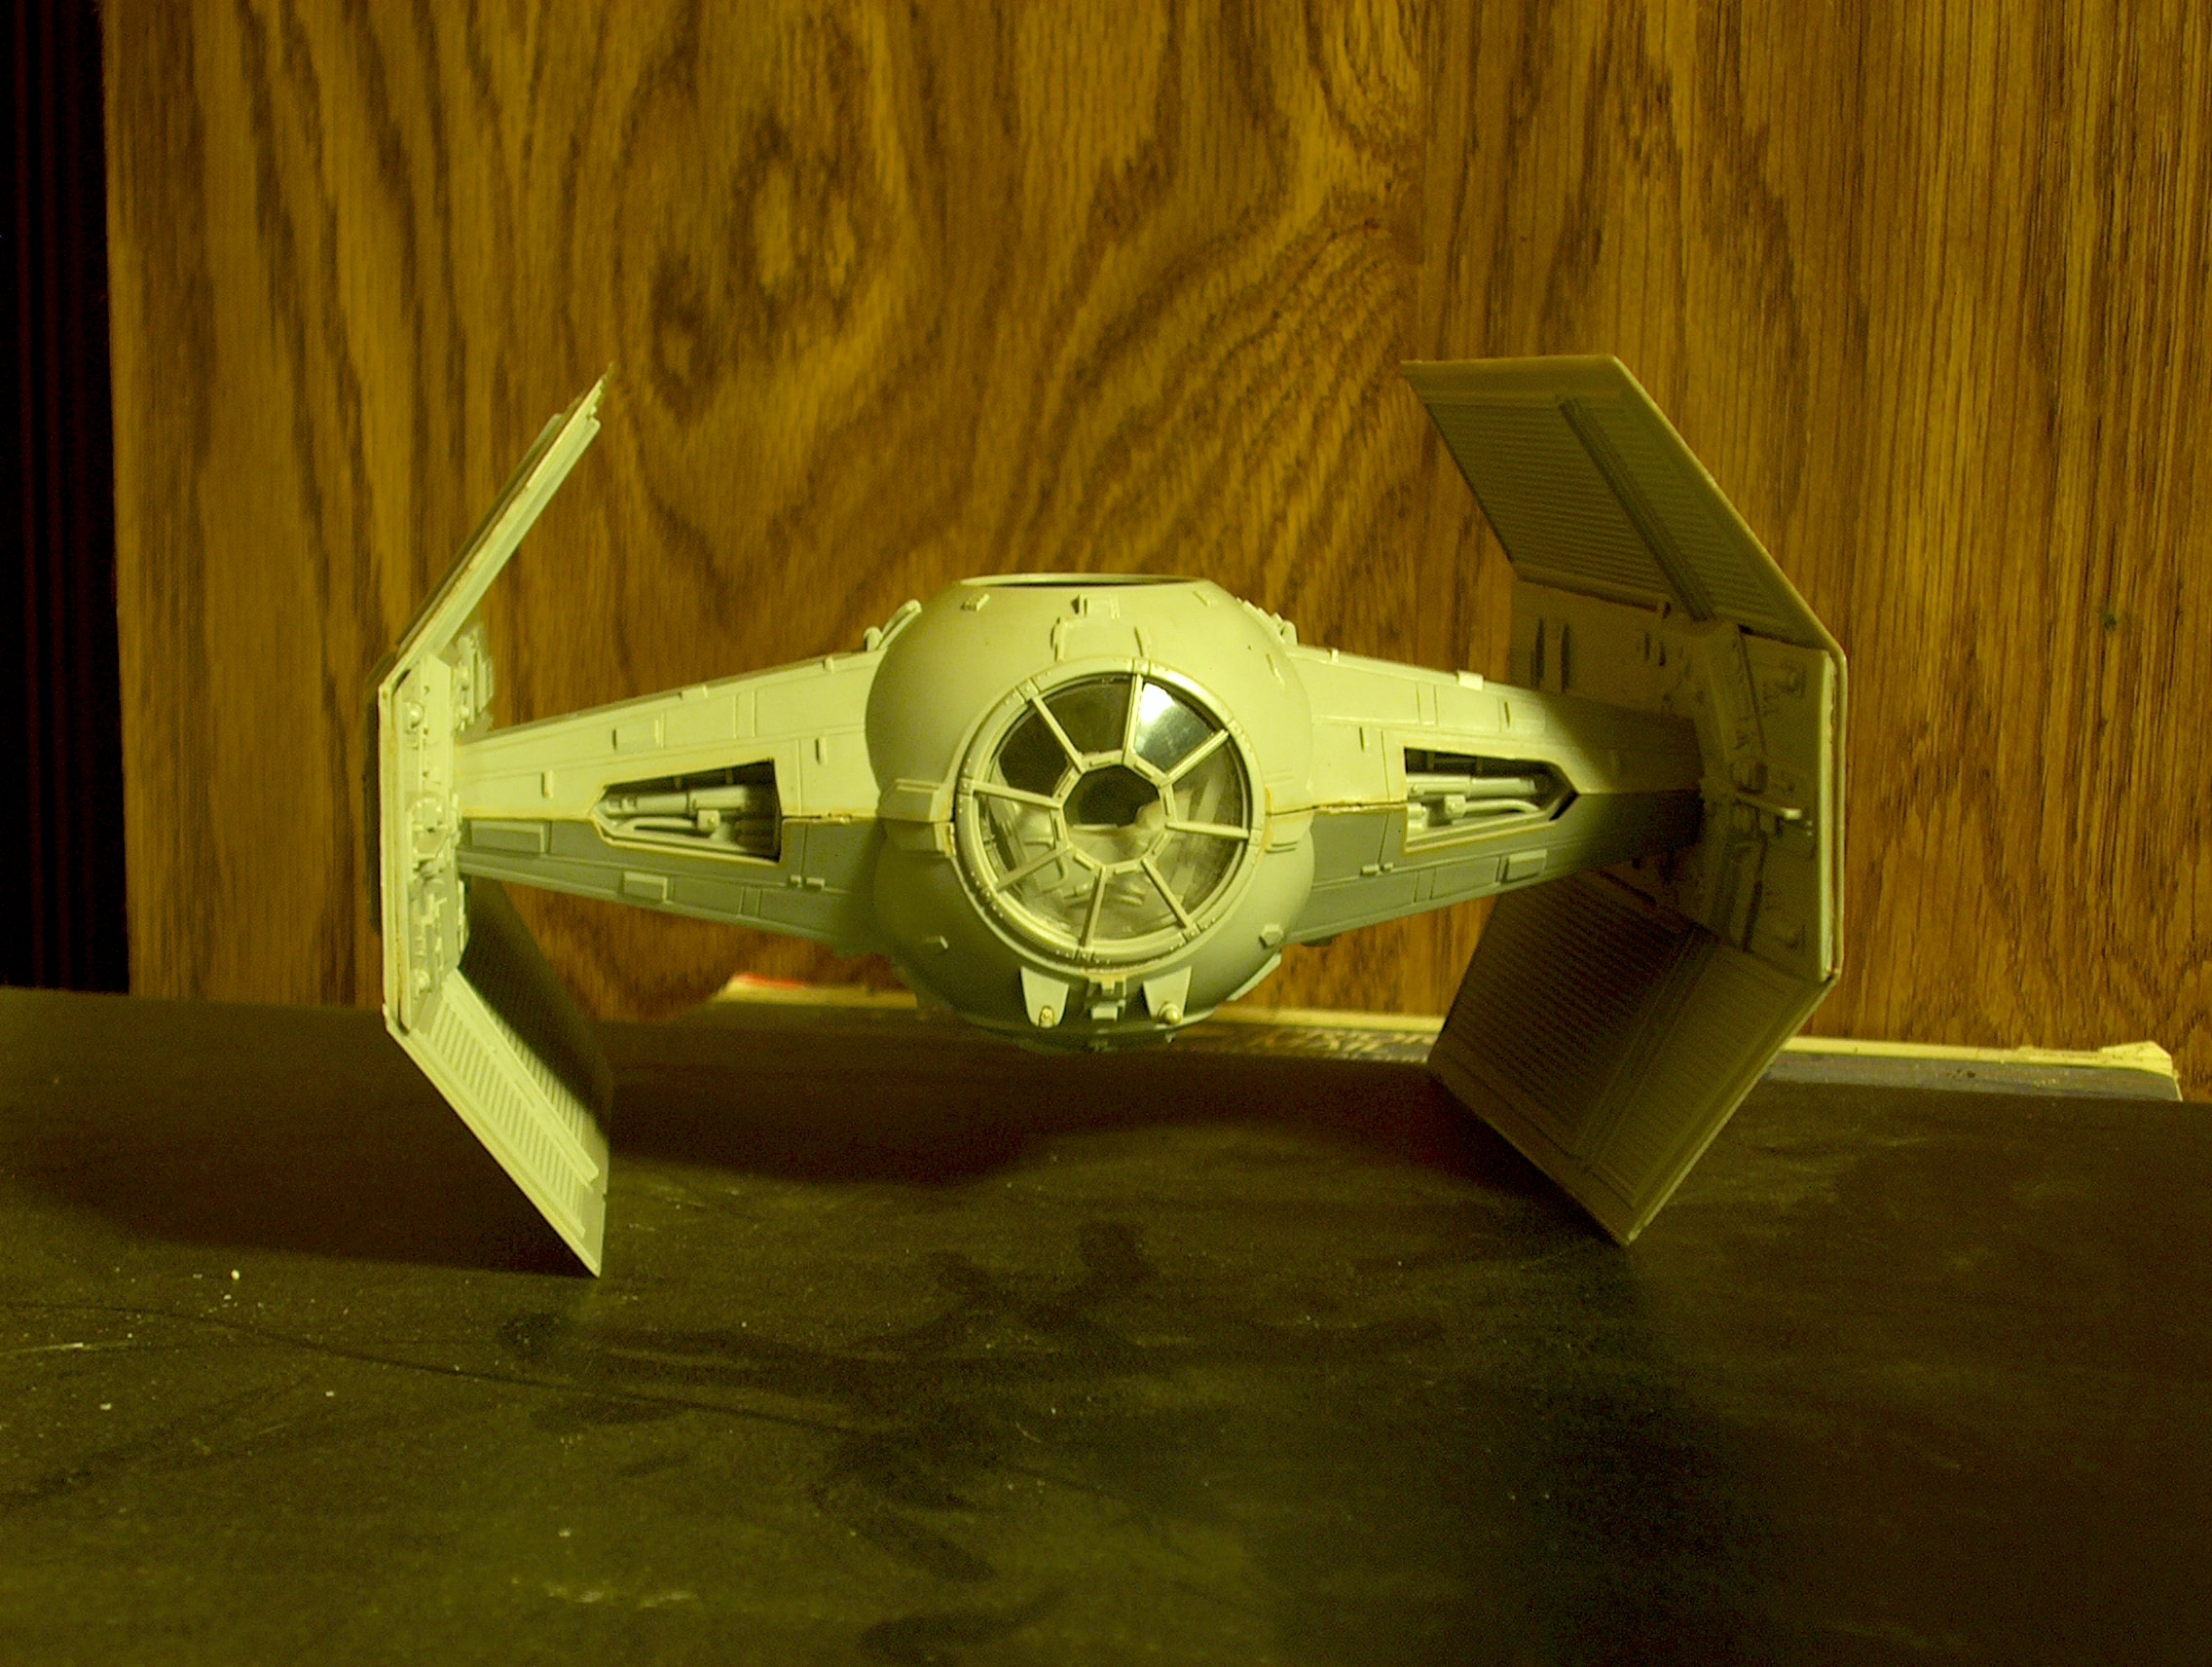 Darth Vader's TIE Fighter with Launching Laser Cannons!